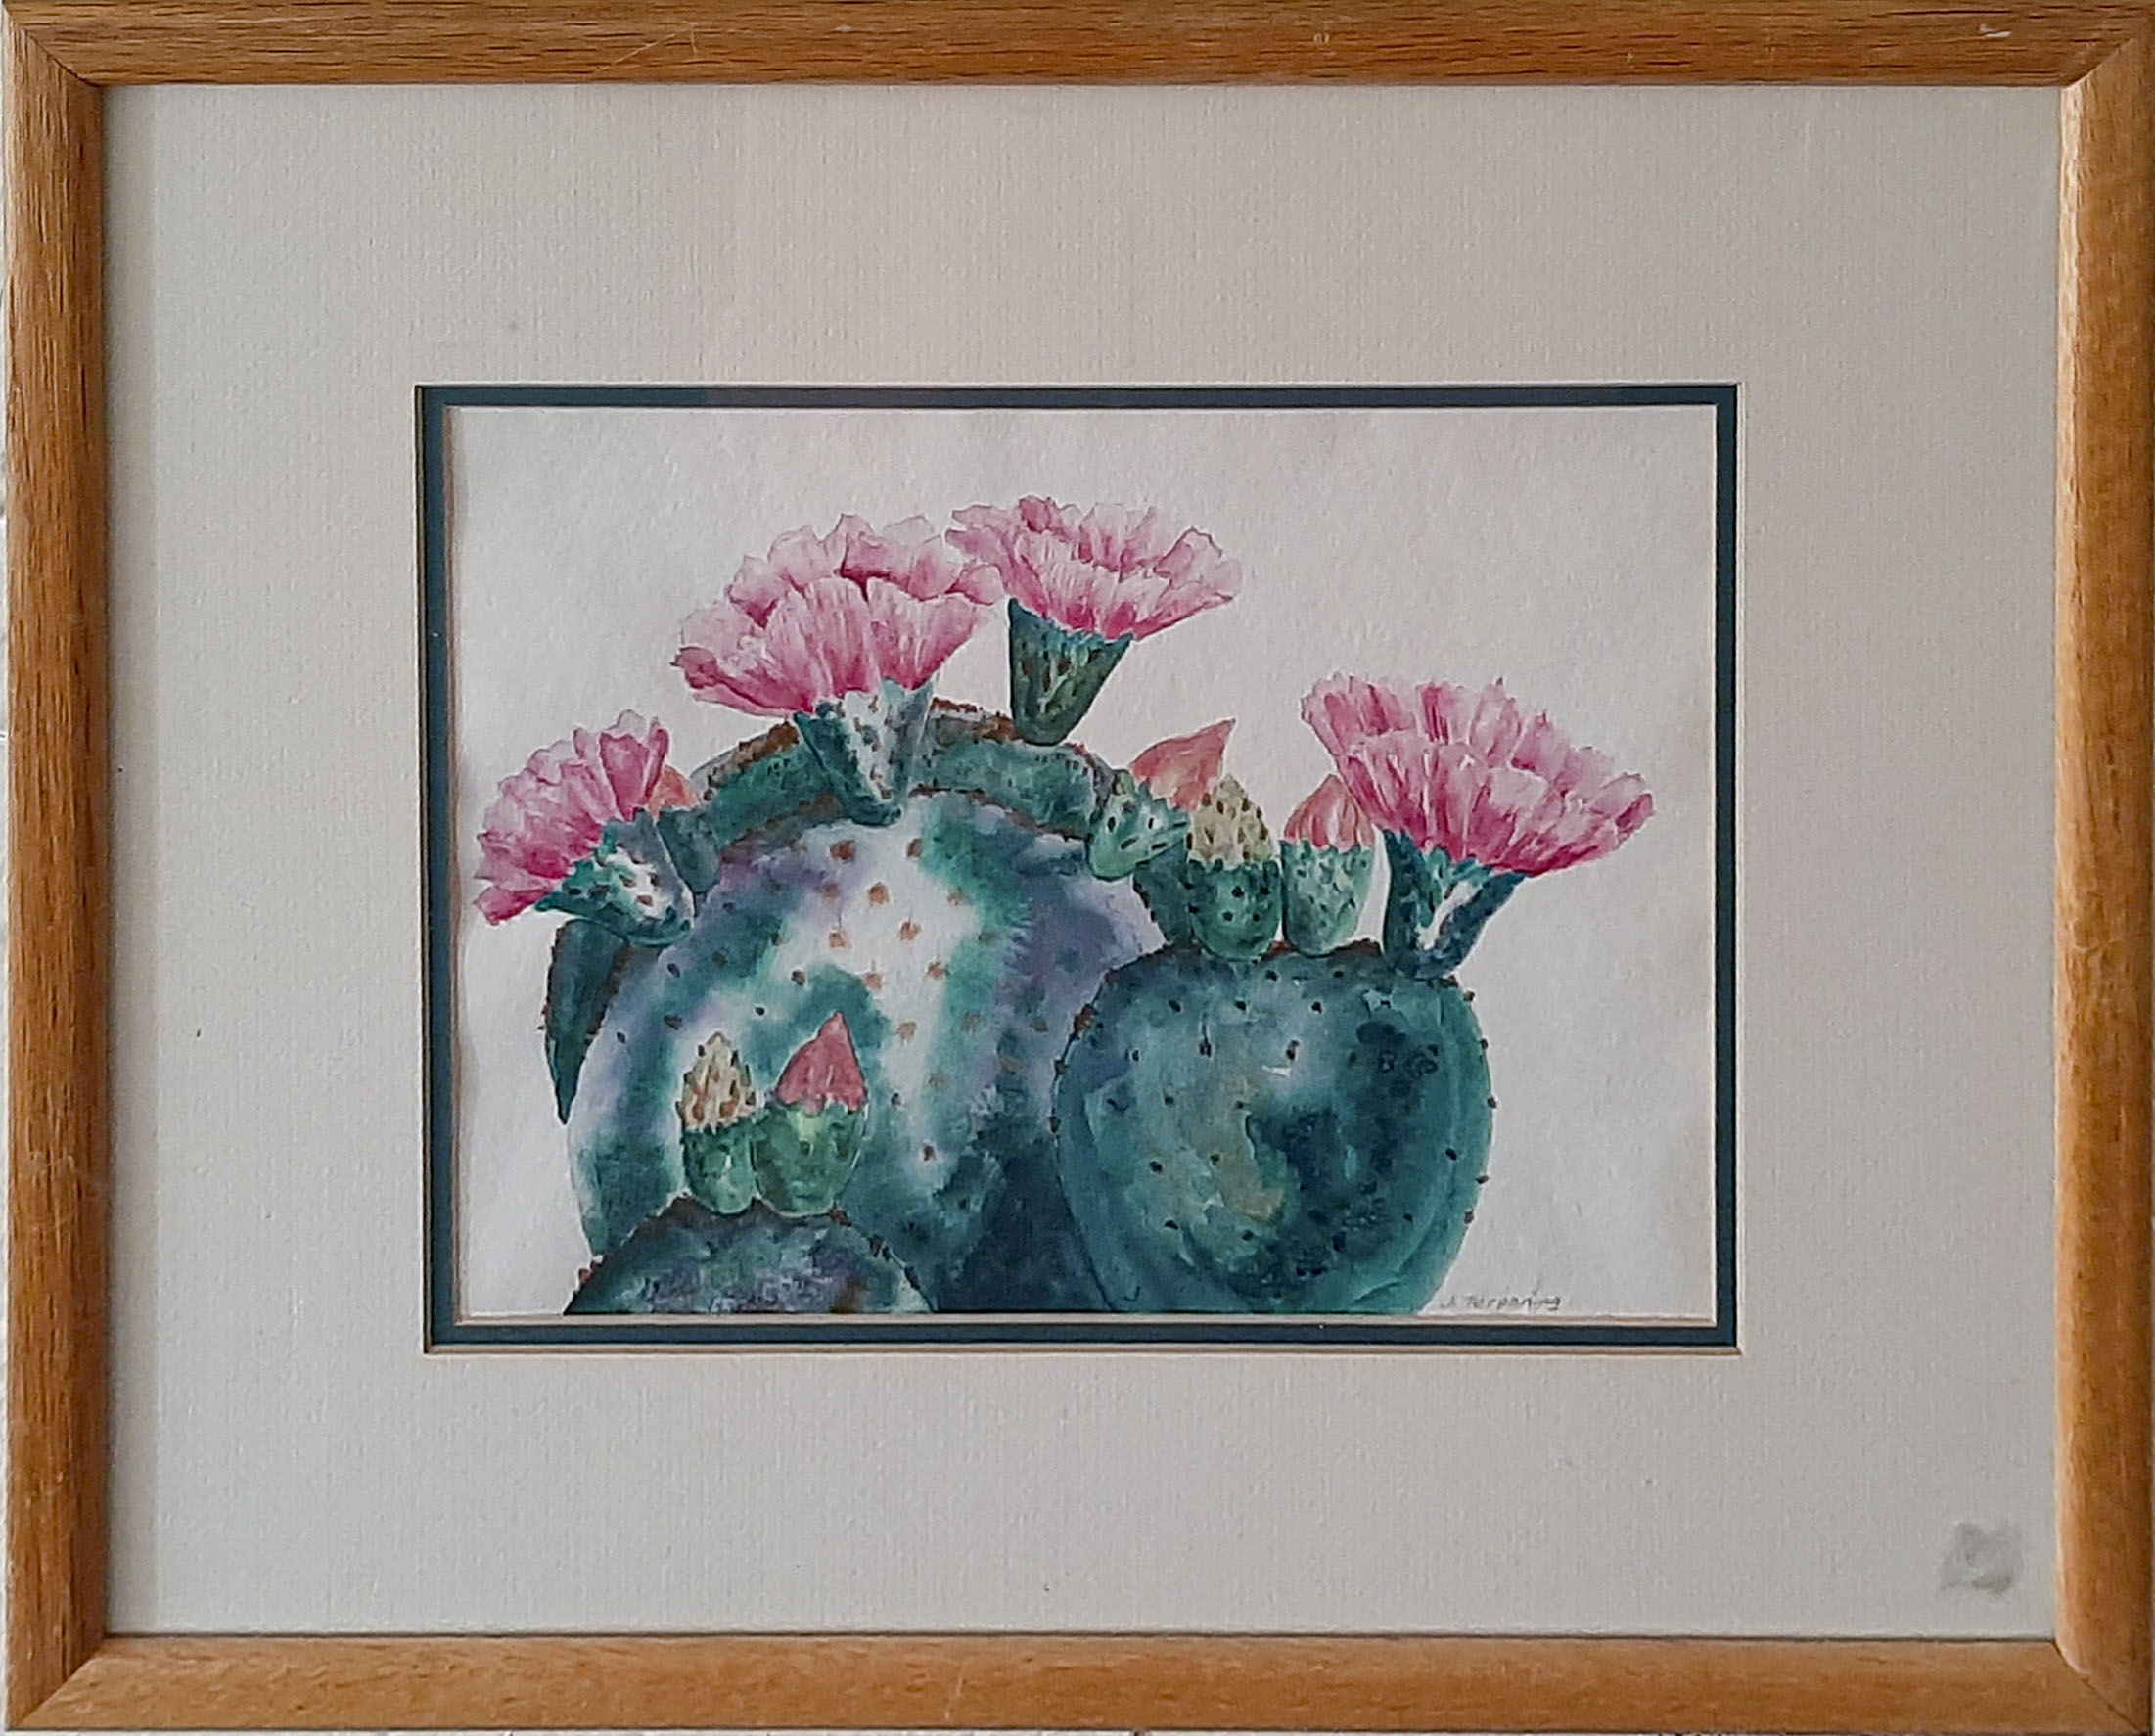 Beautiful Cactus - Julia Terpening